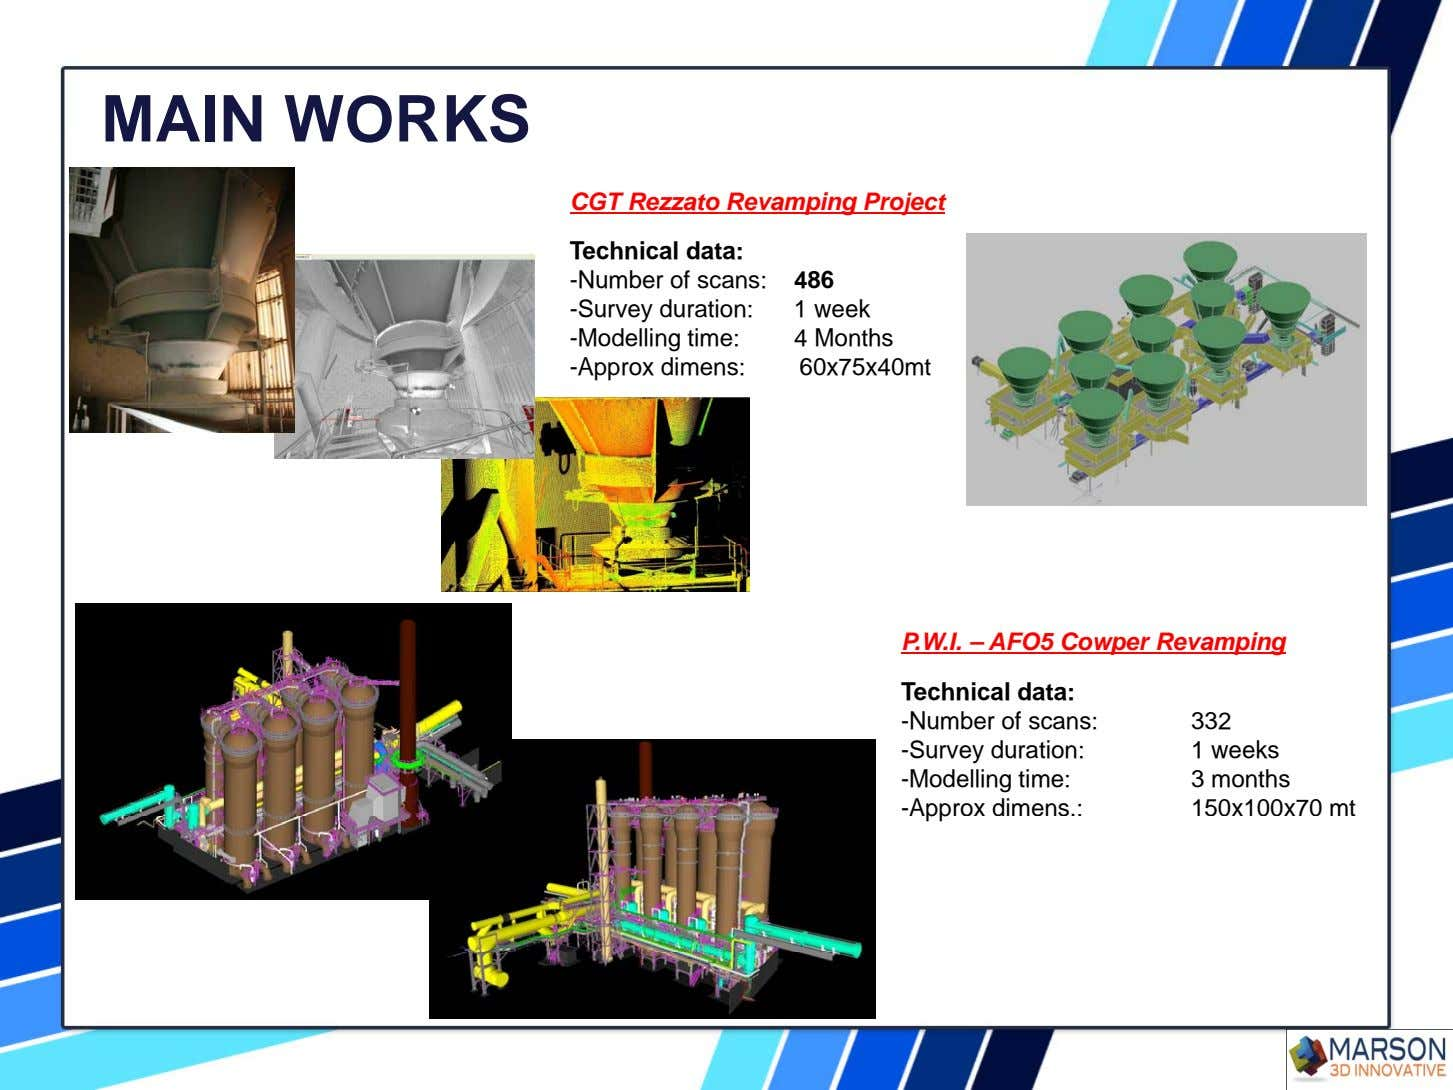 MAIN WORKS CGT Rezzato Revamping Project Technical data: -Number of scans: 486 -Survey duration: 1